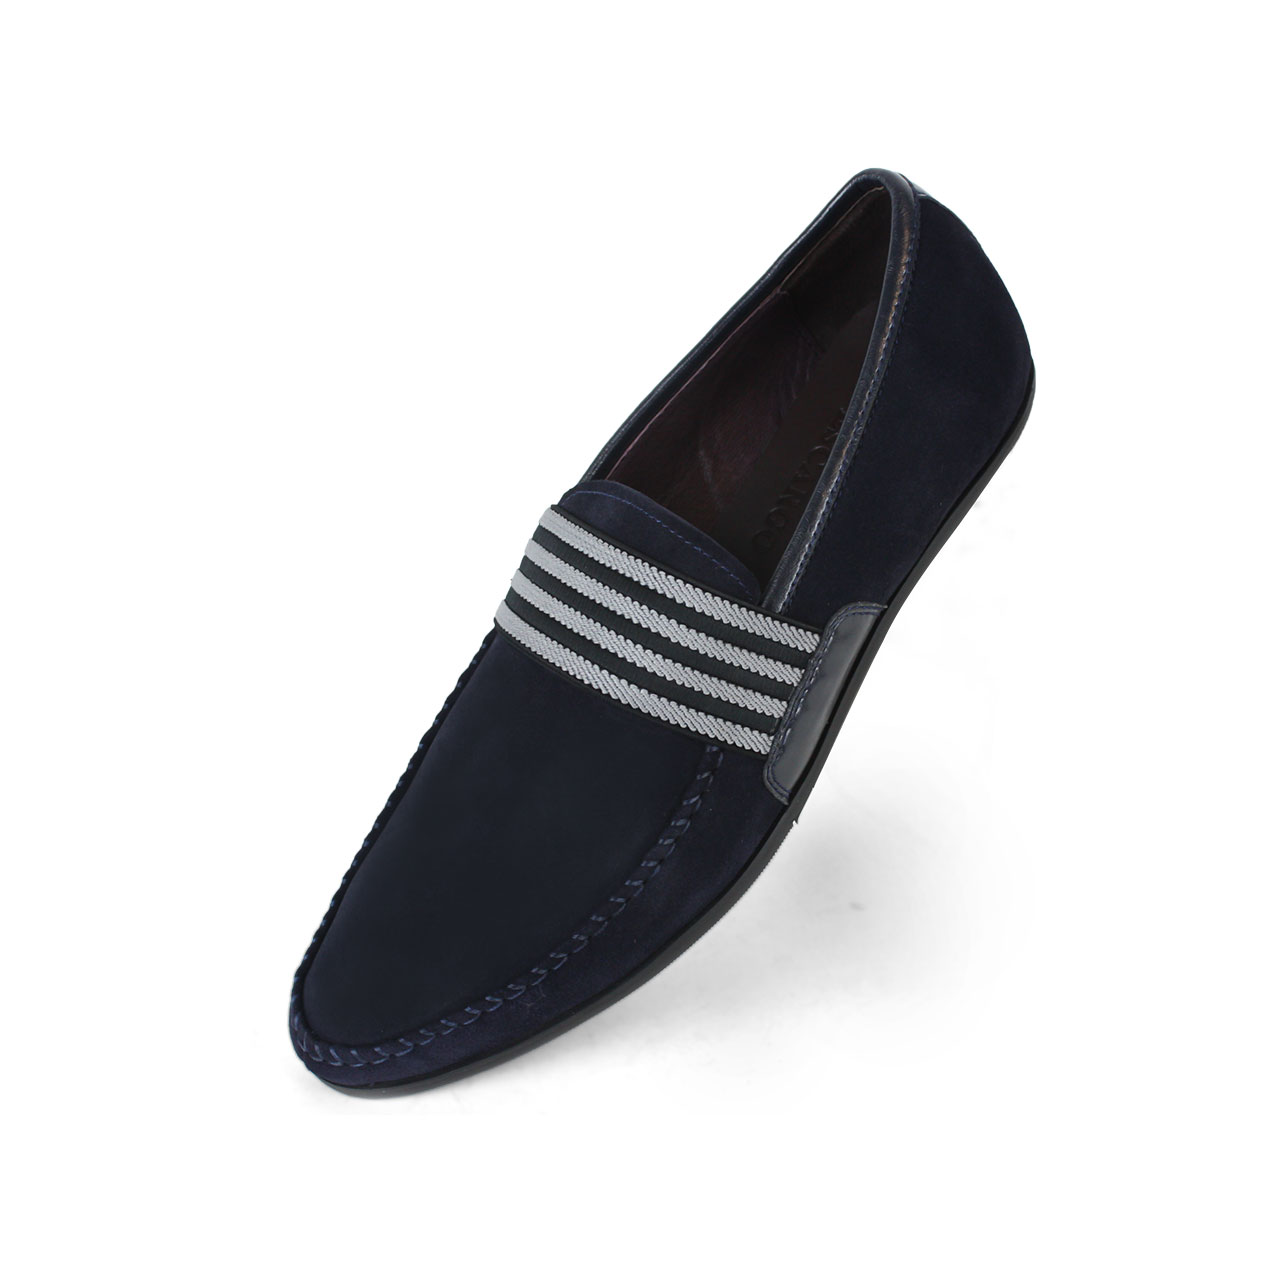 Men's Shoes Casual Denim Loafers Black / Navy Blue